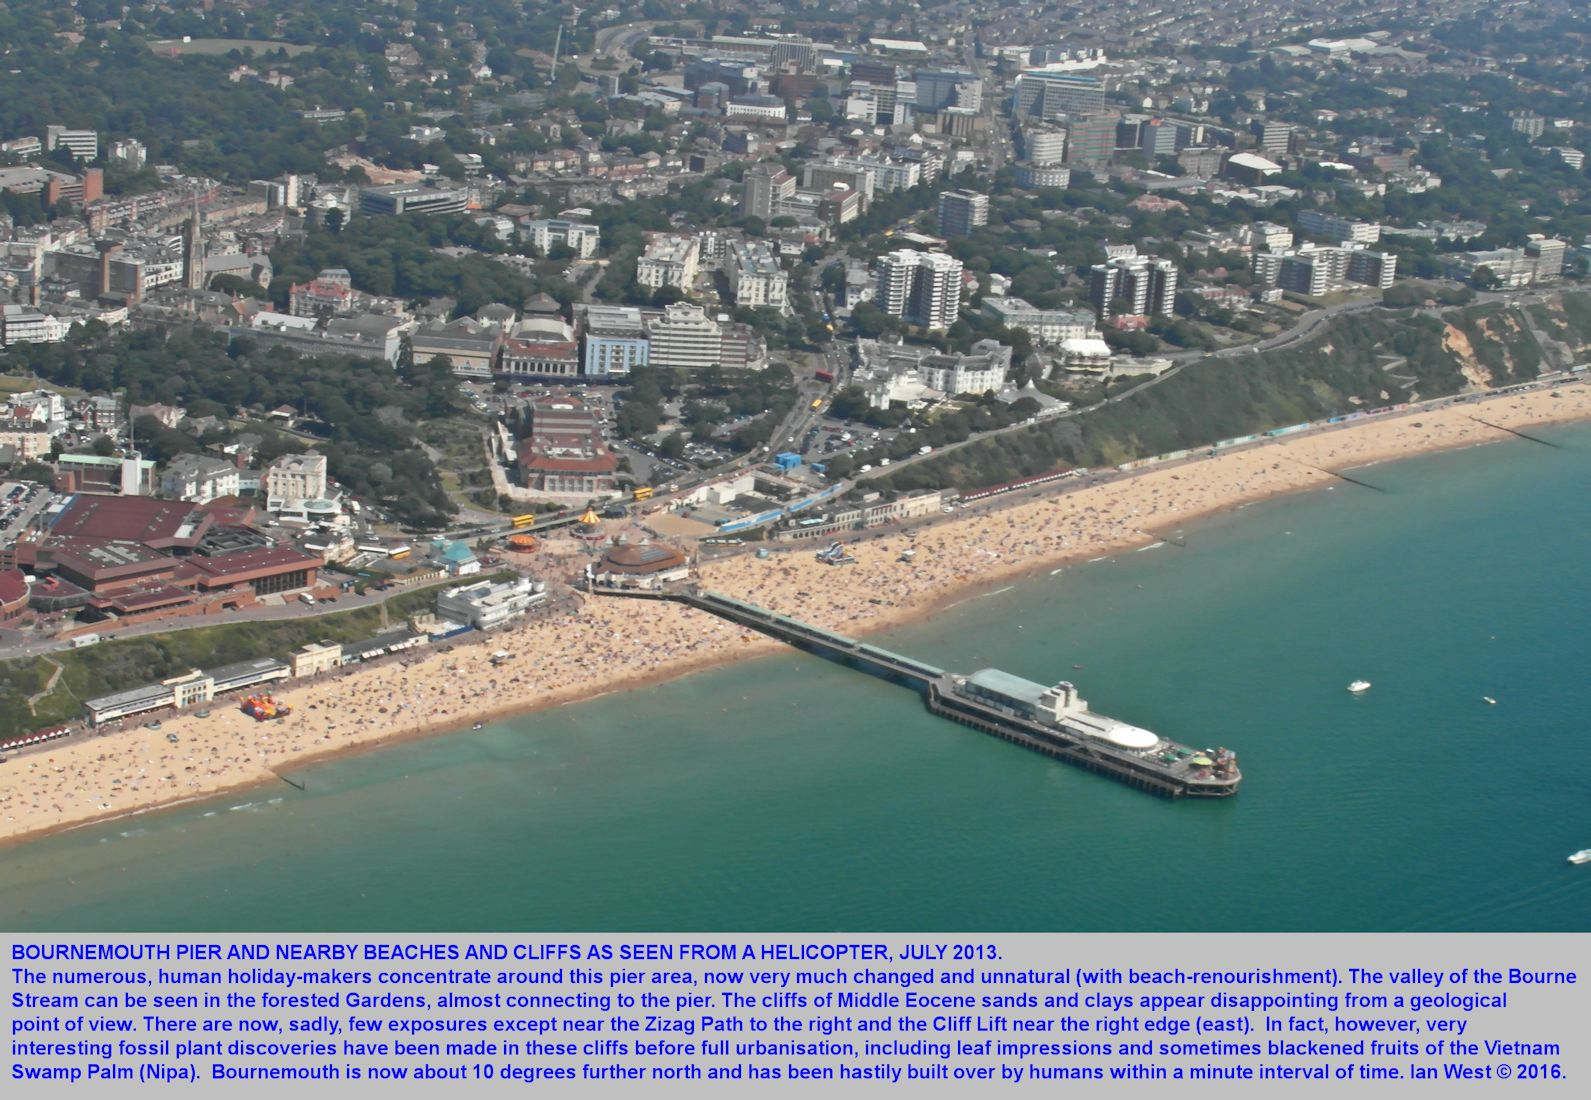 A general helicopter view of Bournemouth Pier and adjacent coast, showing overgrown cliffs of Eocene sand and clay, 6th July 2013